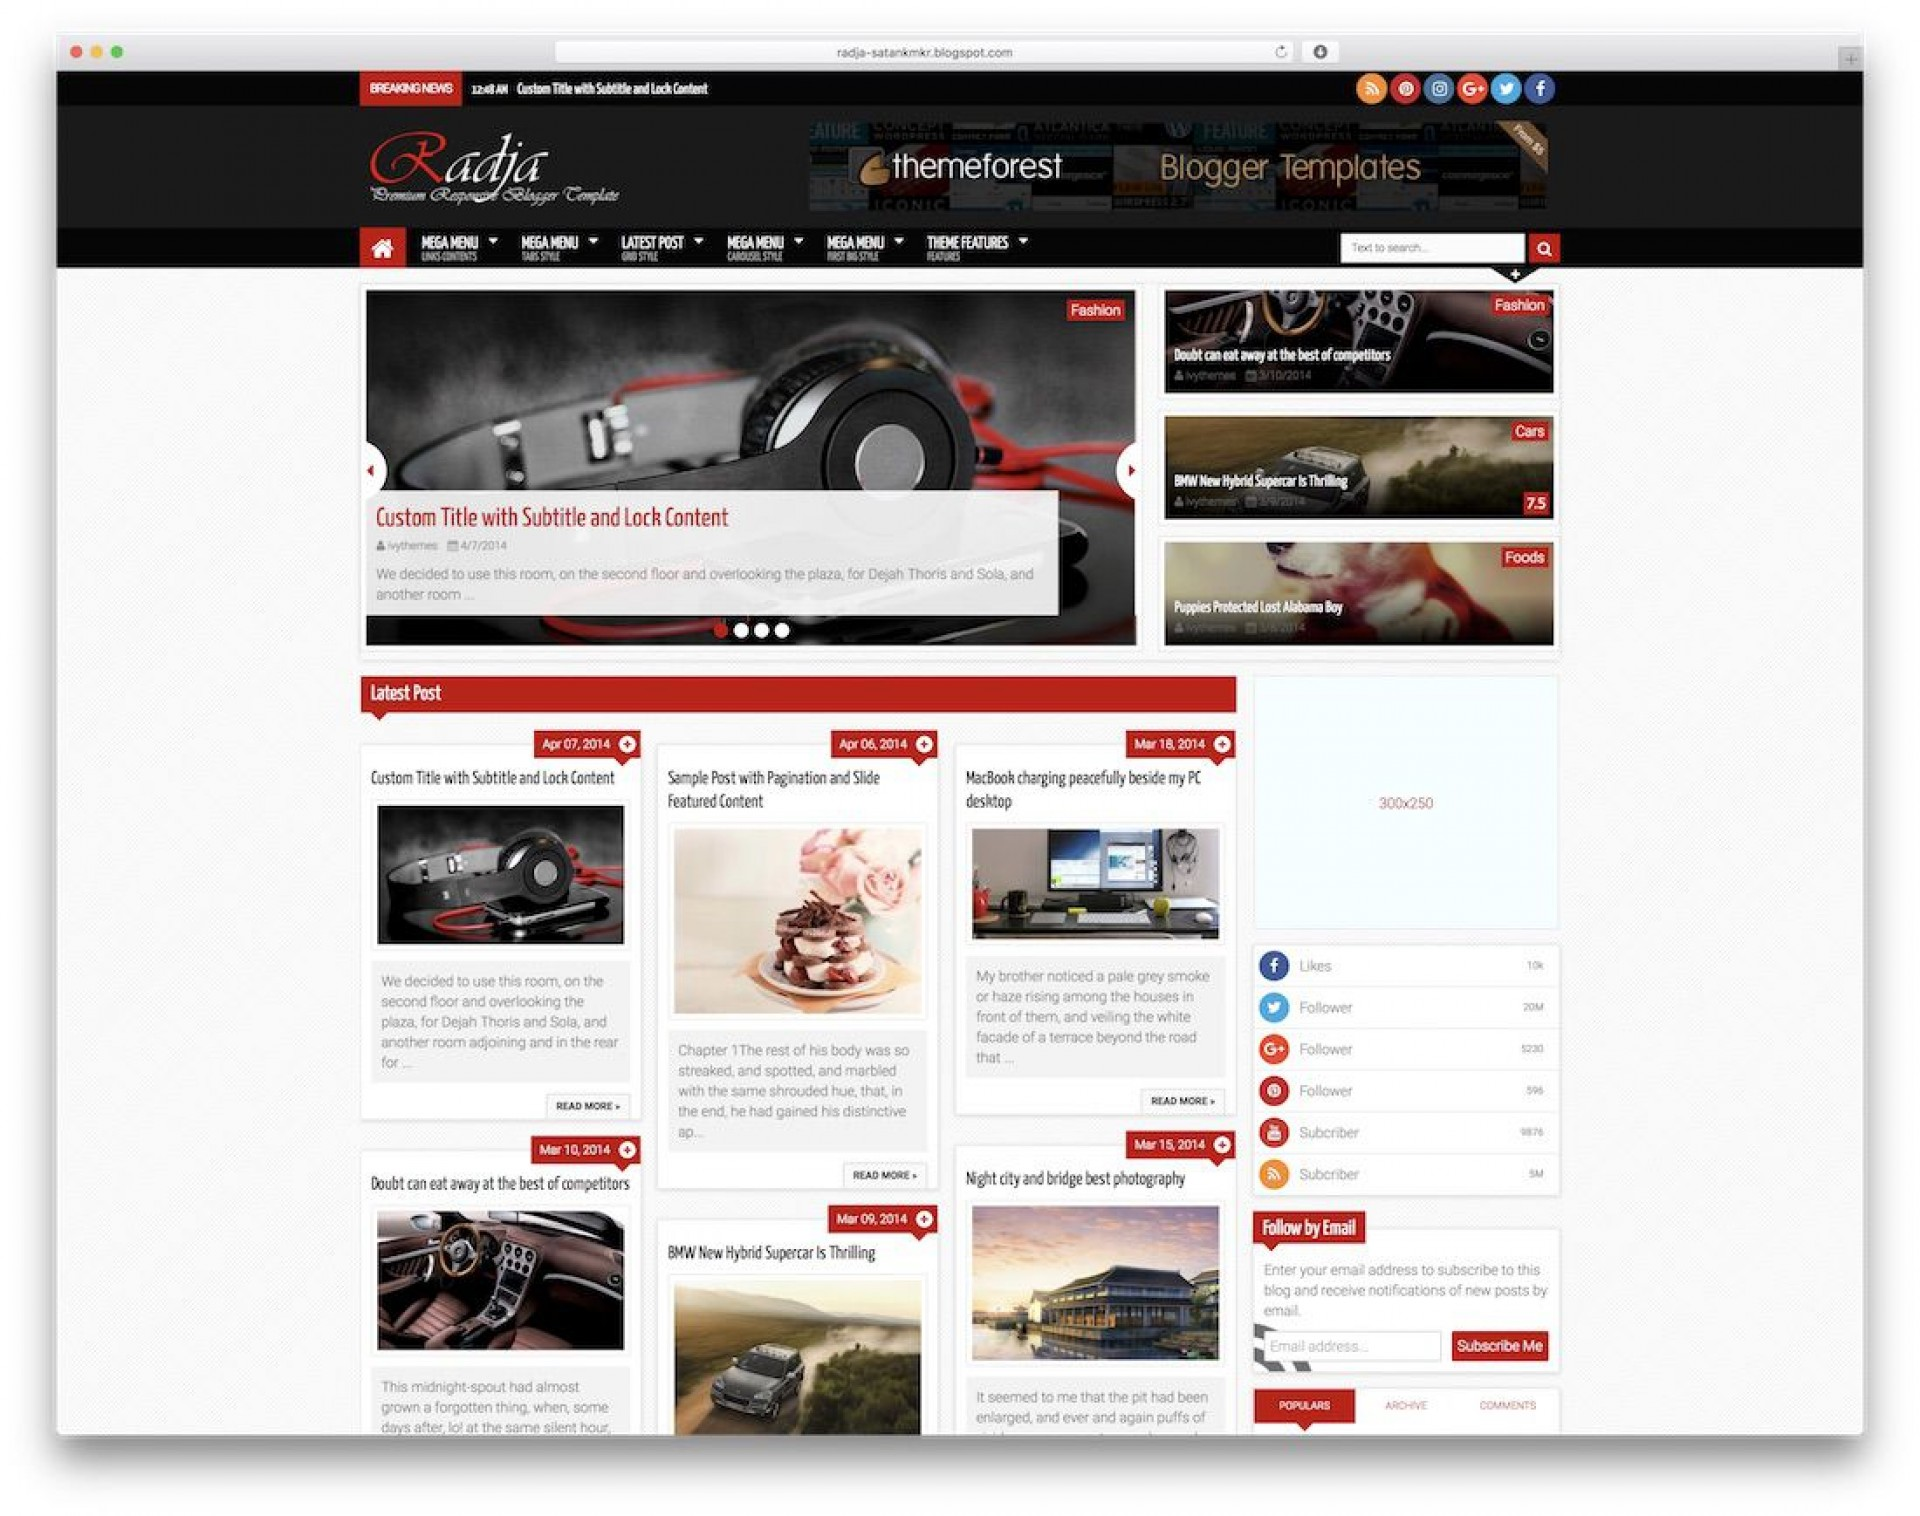 006 Breathtaking Free Template For Blogger High Resolution  Blog Best Photographer Xml Download1920